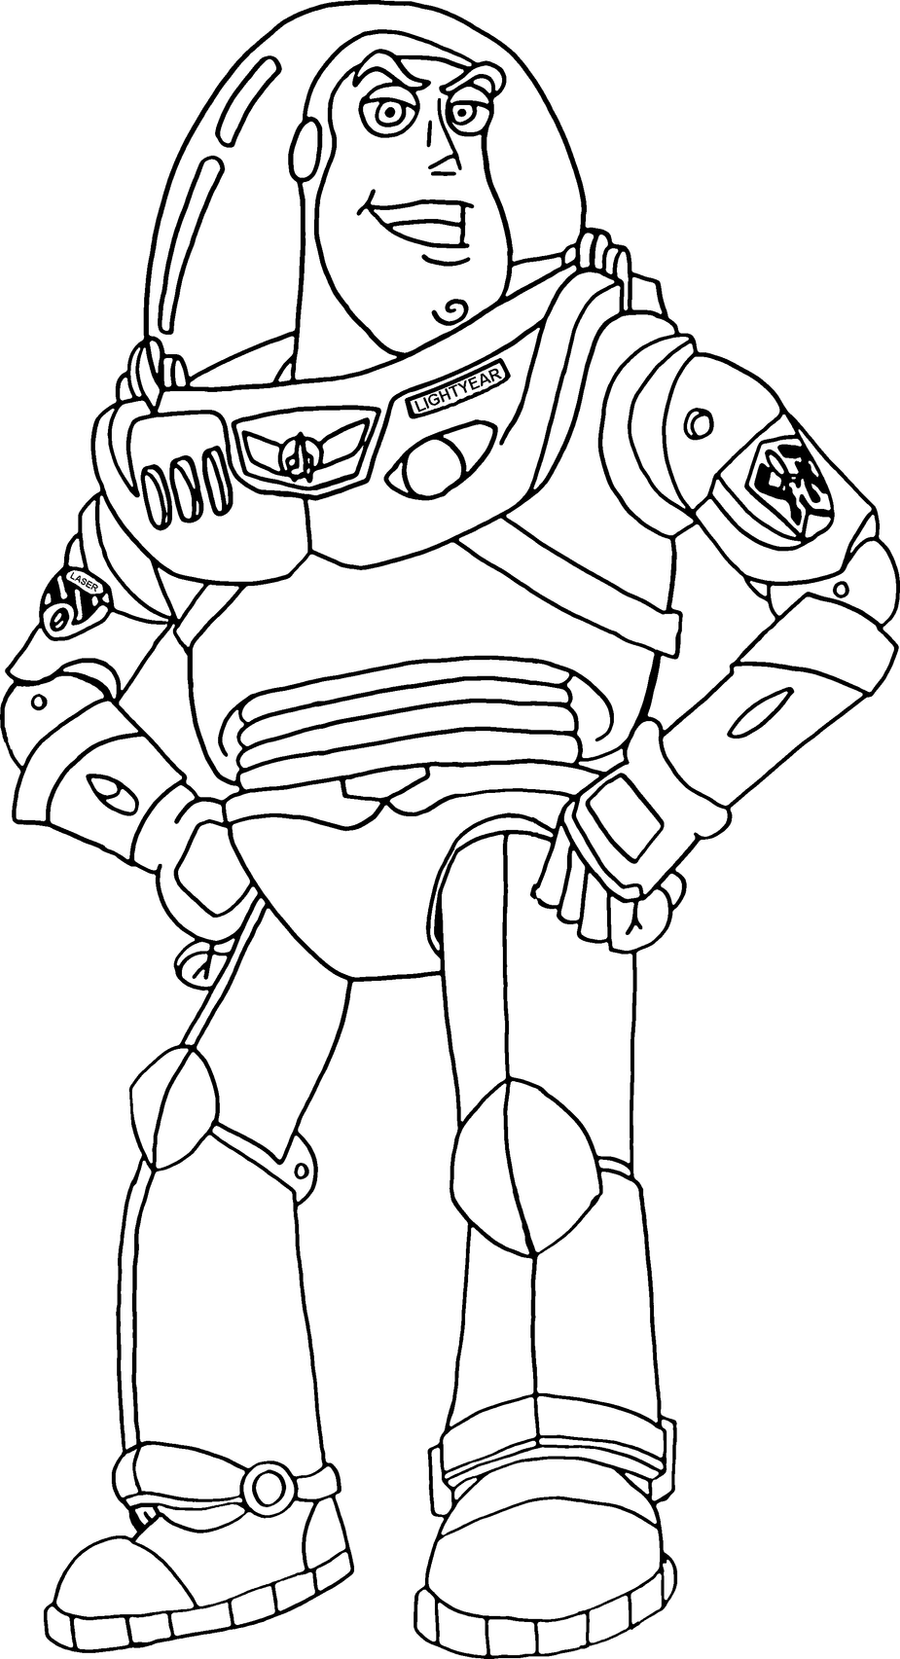 buzz lightyear coloring page - buzzlightyear free colouring pages